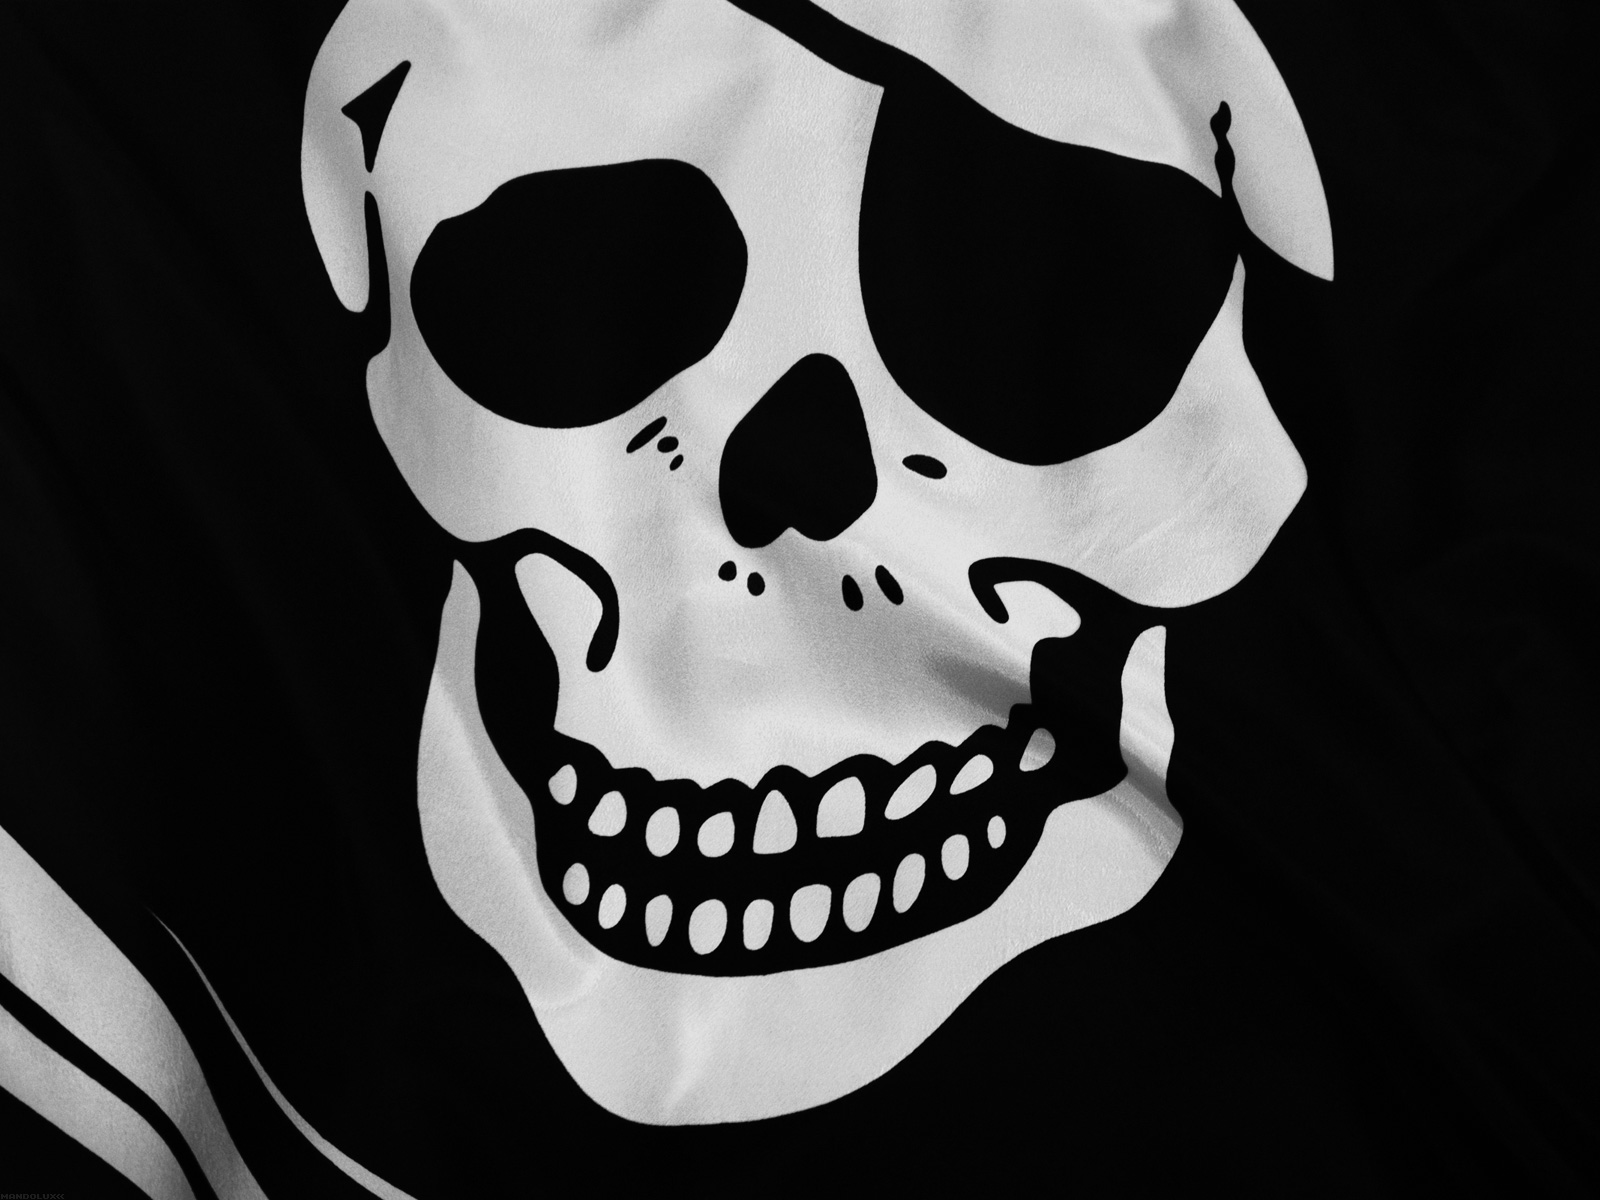 pirates-skull-wallpaper